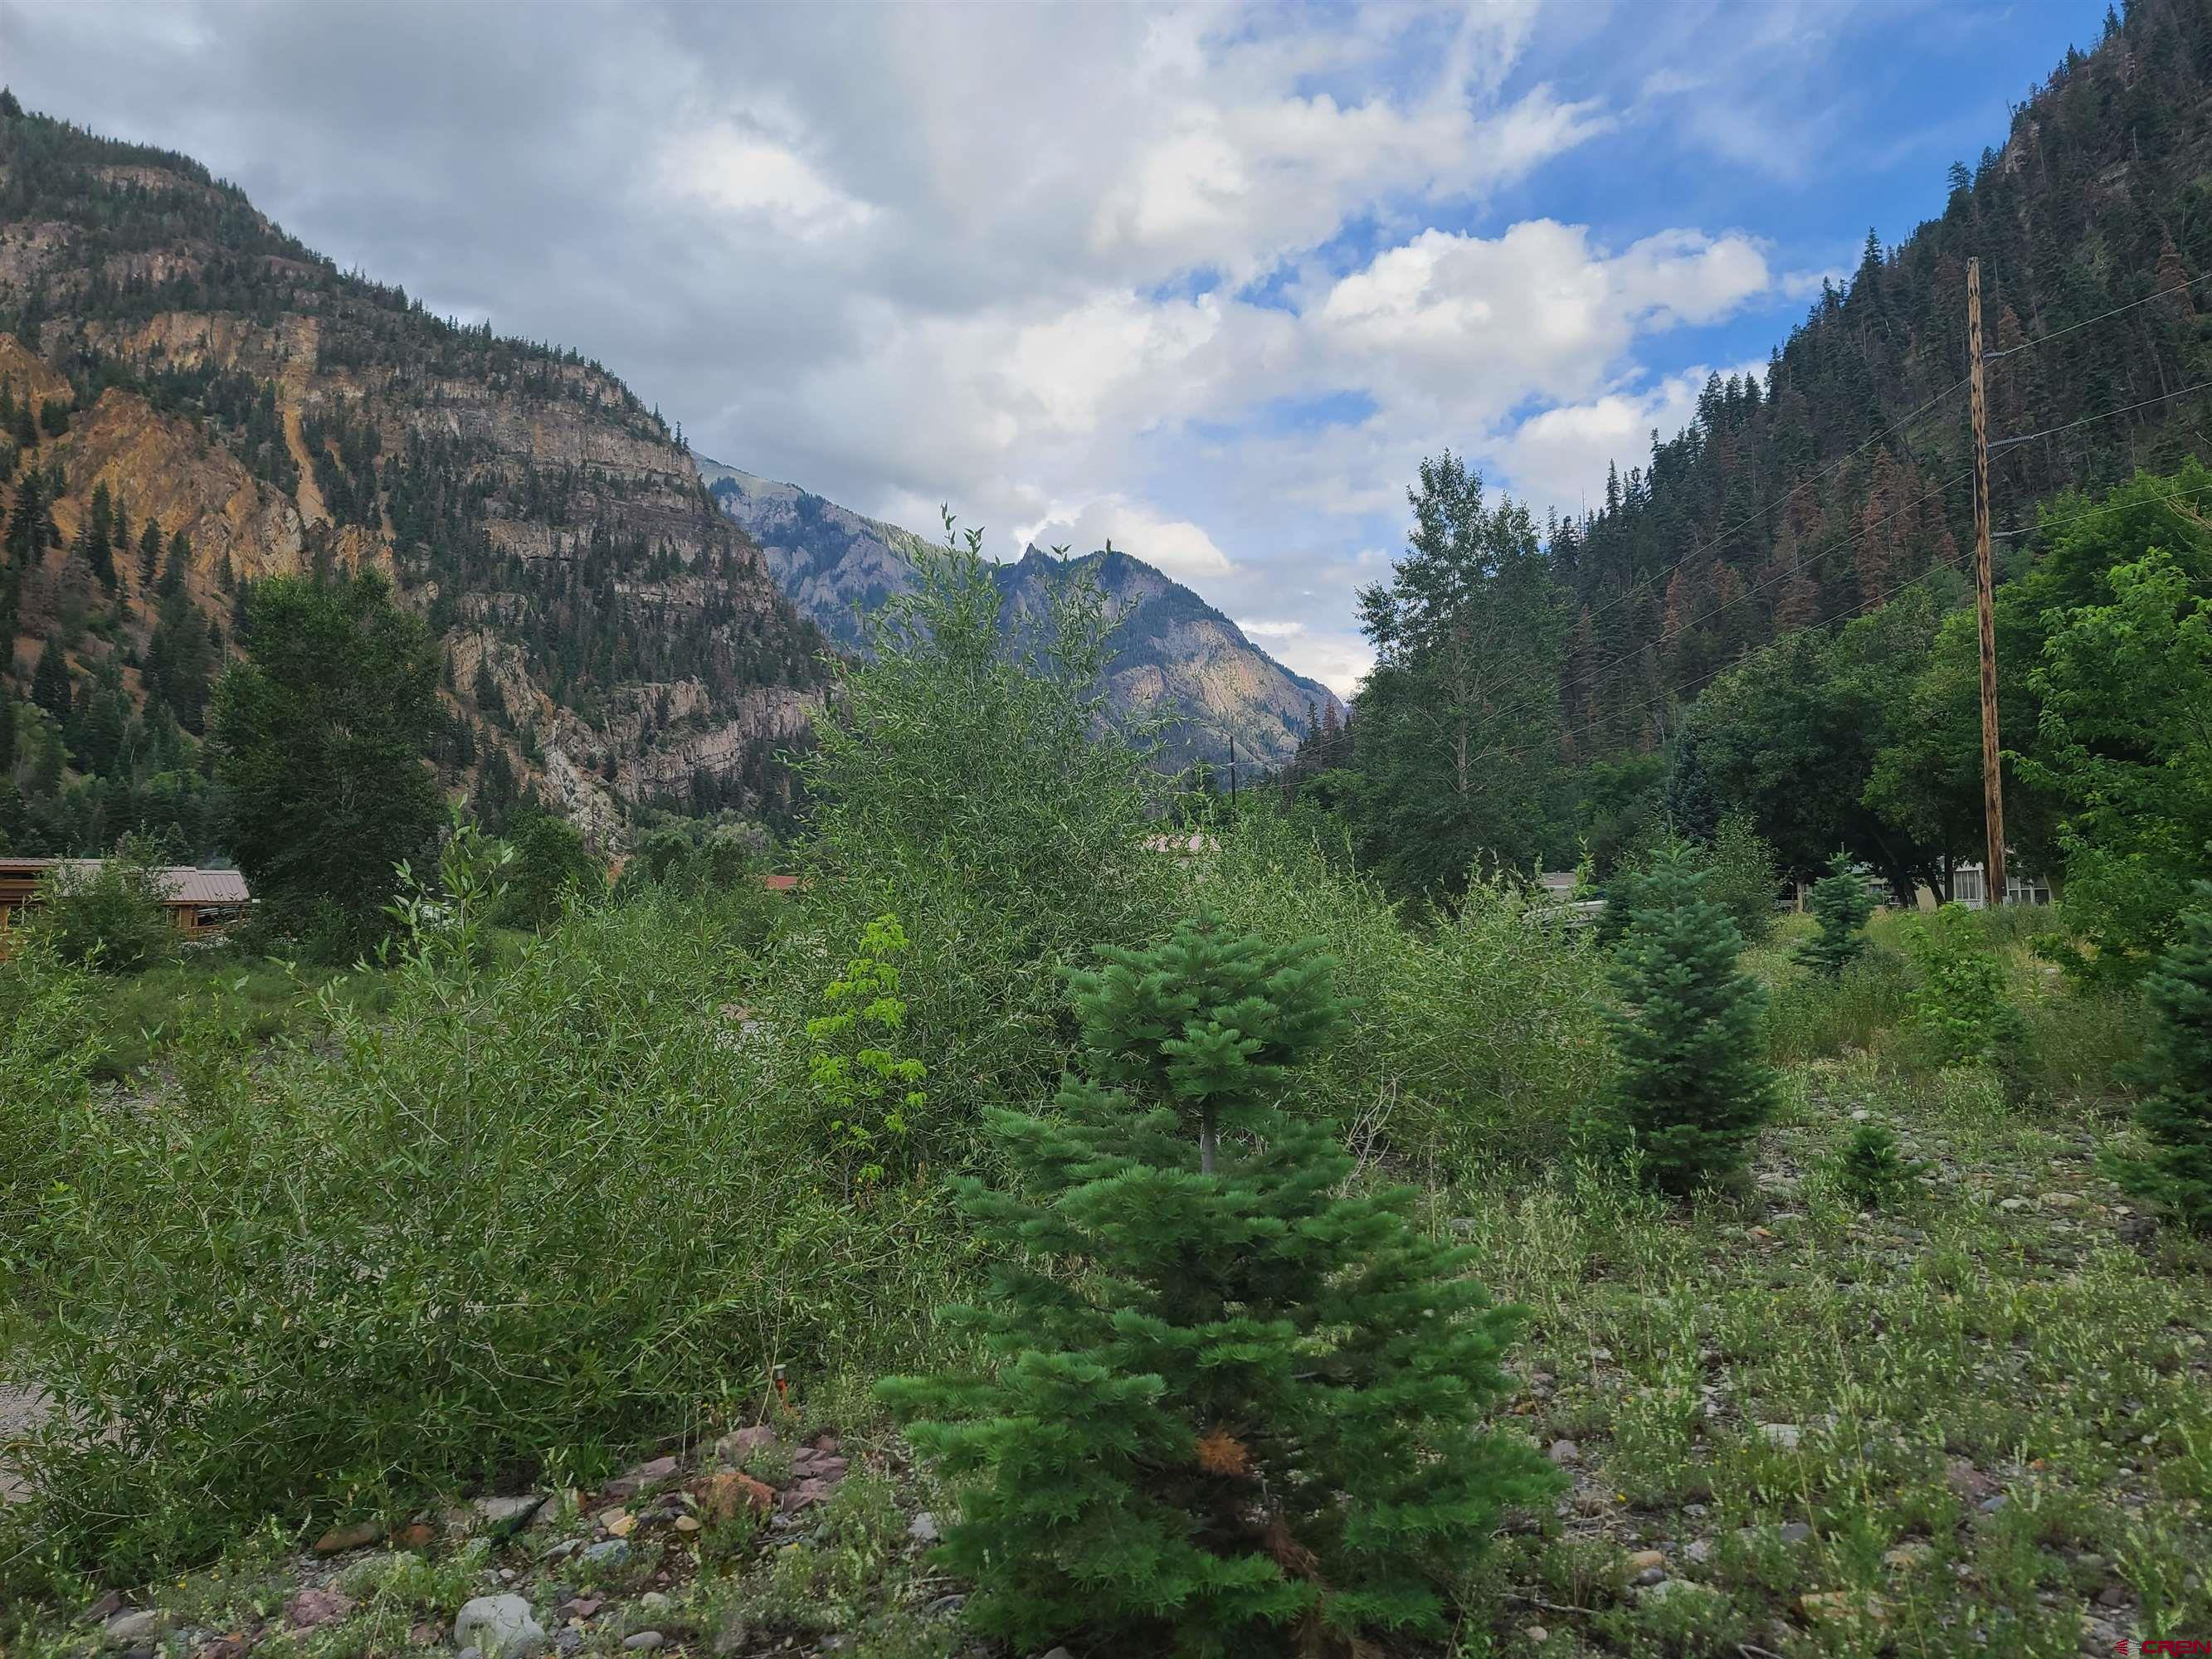 This is a great potential development parcel. Wonderful lot along the Uncompahgre River and North Ouray Corridor trail. All utilities at the property line. Flat and totally usable. Great views of the river and surrounding mountains and mining structures. Zoned R2 which allows for single family or multi family structures.